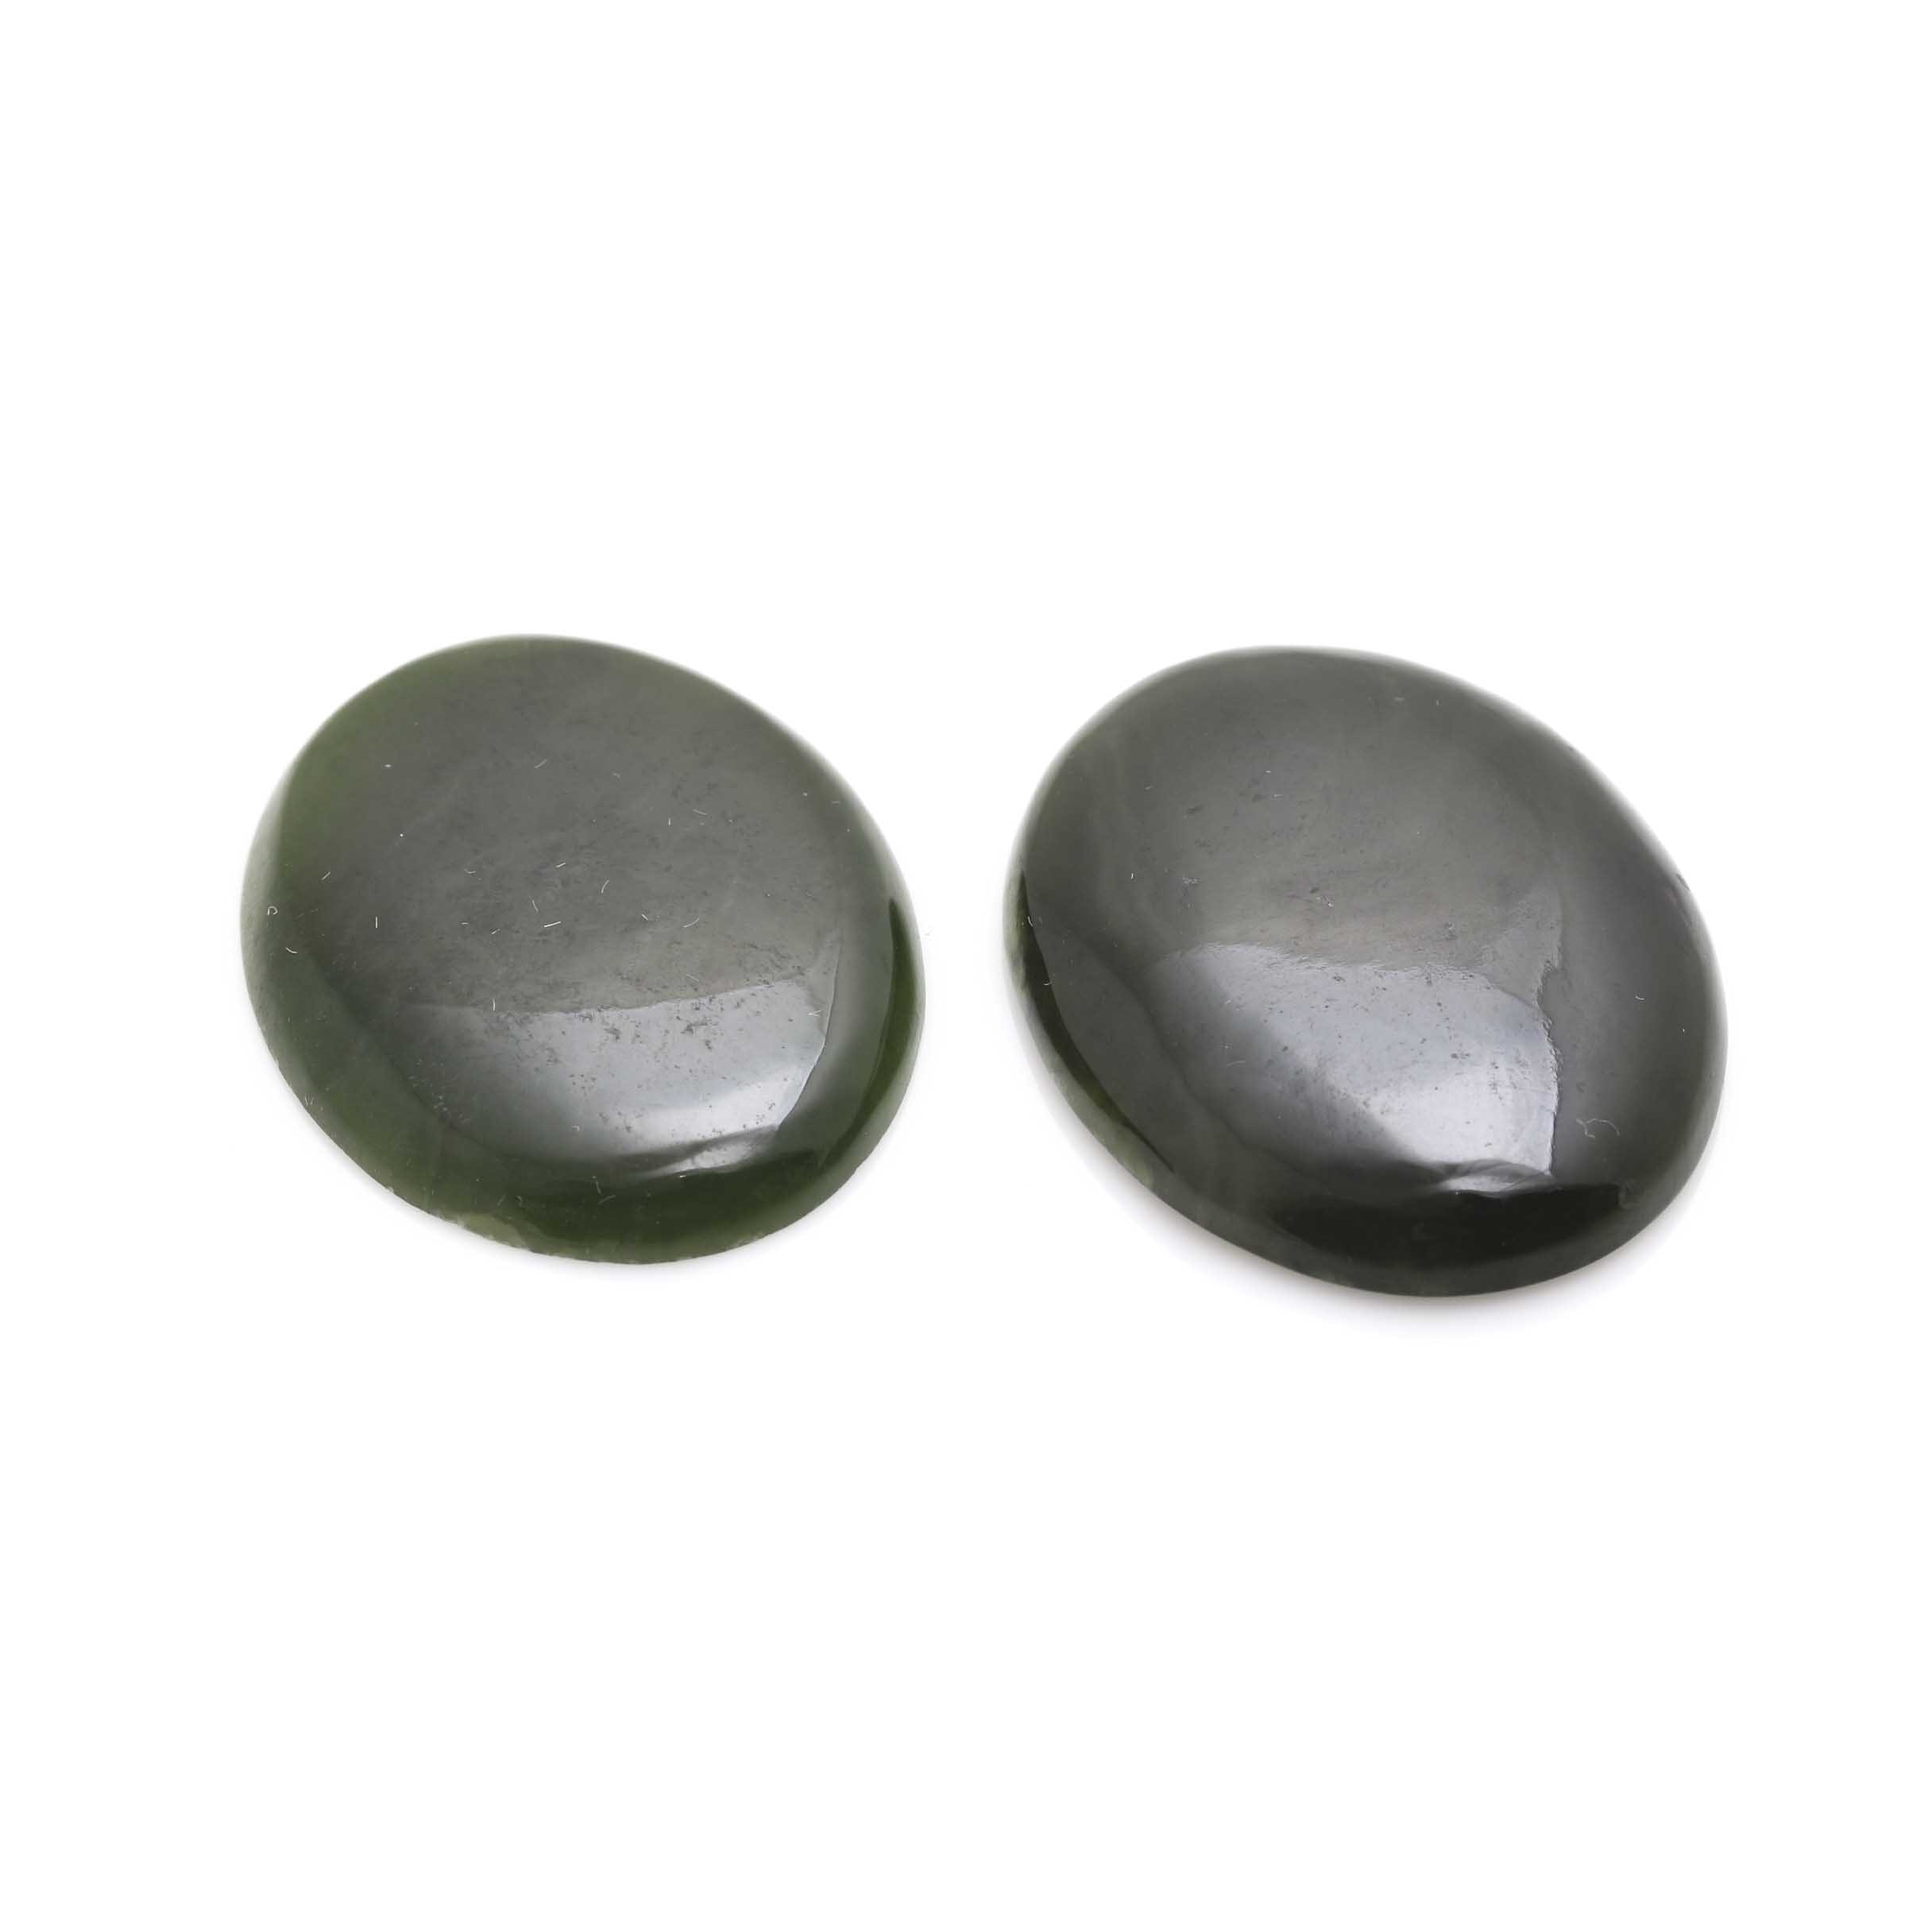 Two Loose Oval Nephrite Cabochons